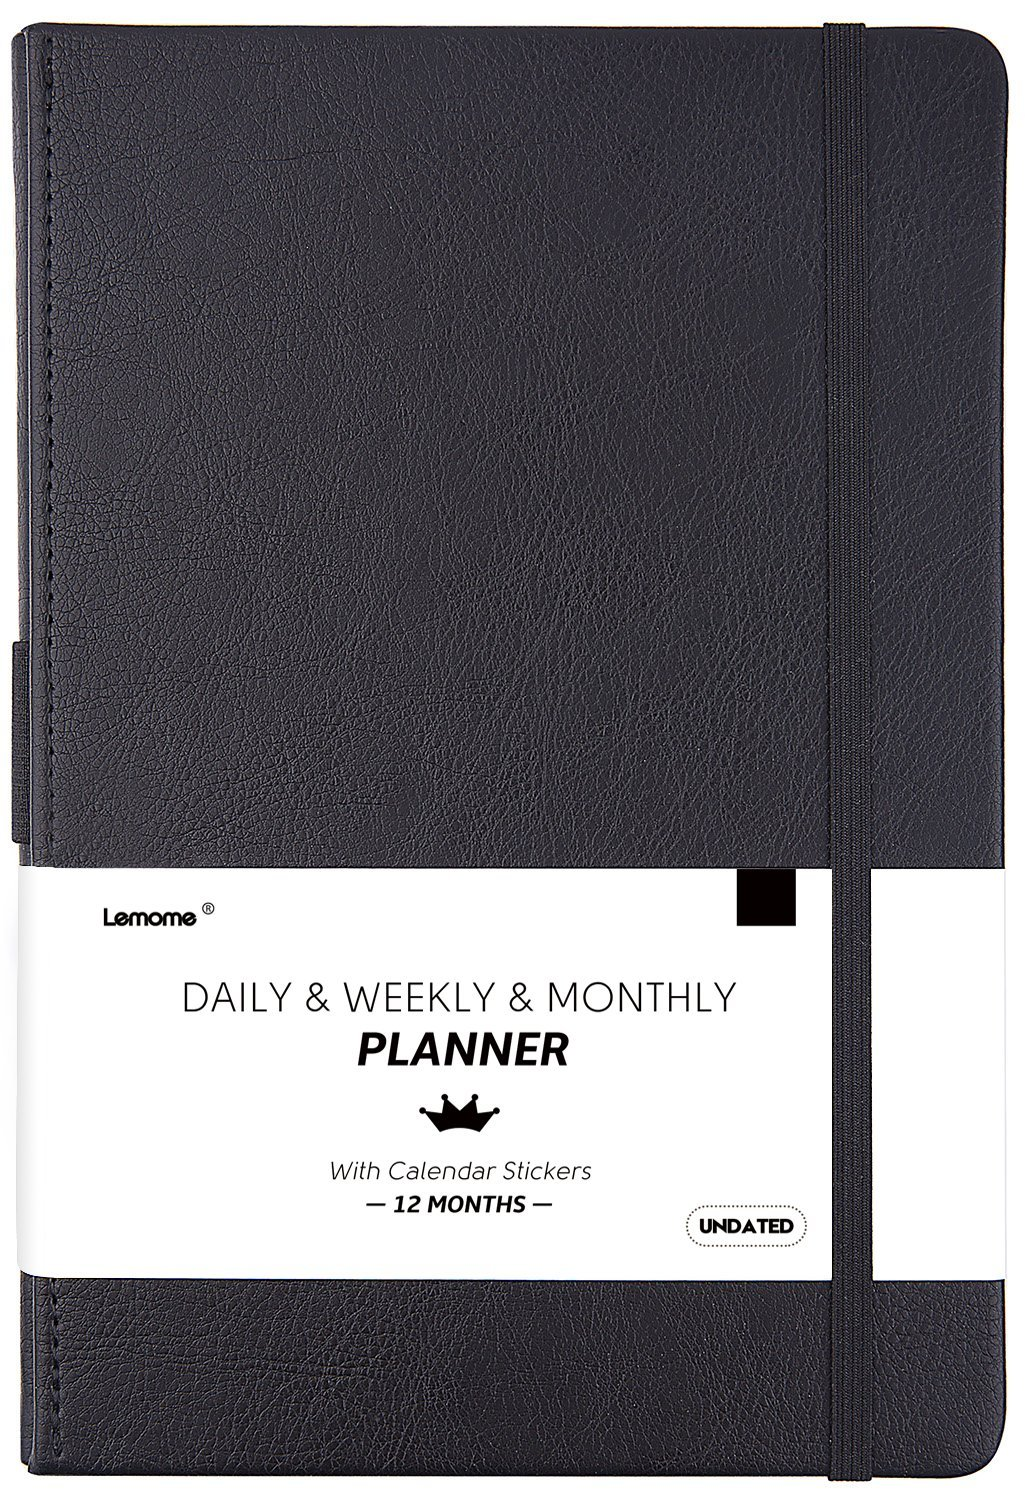 Daily/Monthly Planner + 2018-2019 Calendar Stickers and Monthly & Weekly TO-DO List to Improve Productivity, Premium Thick Paper, Pen Holder, 5.75'' x 8.25'', Inner Pocket, 12 Months Guarantee - Undated